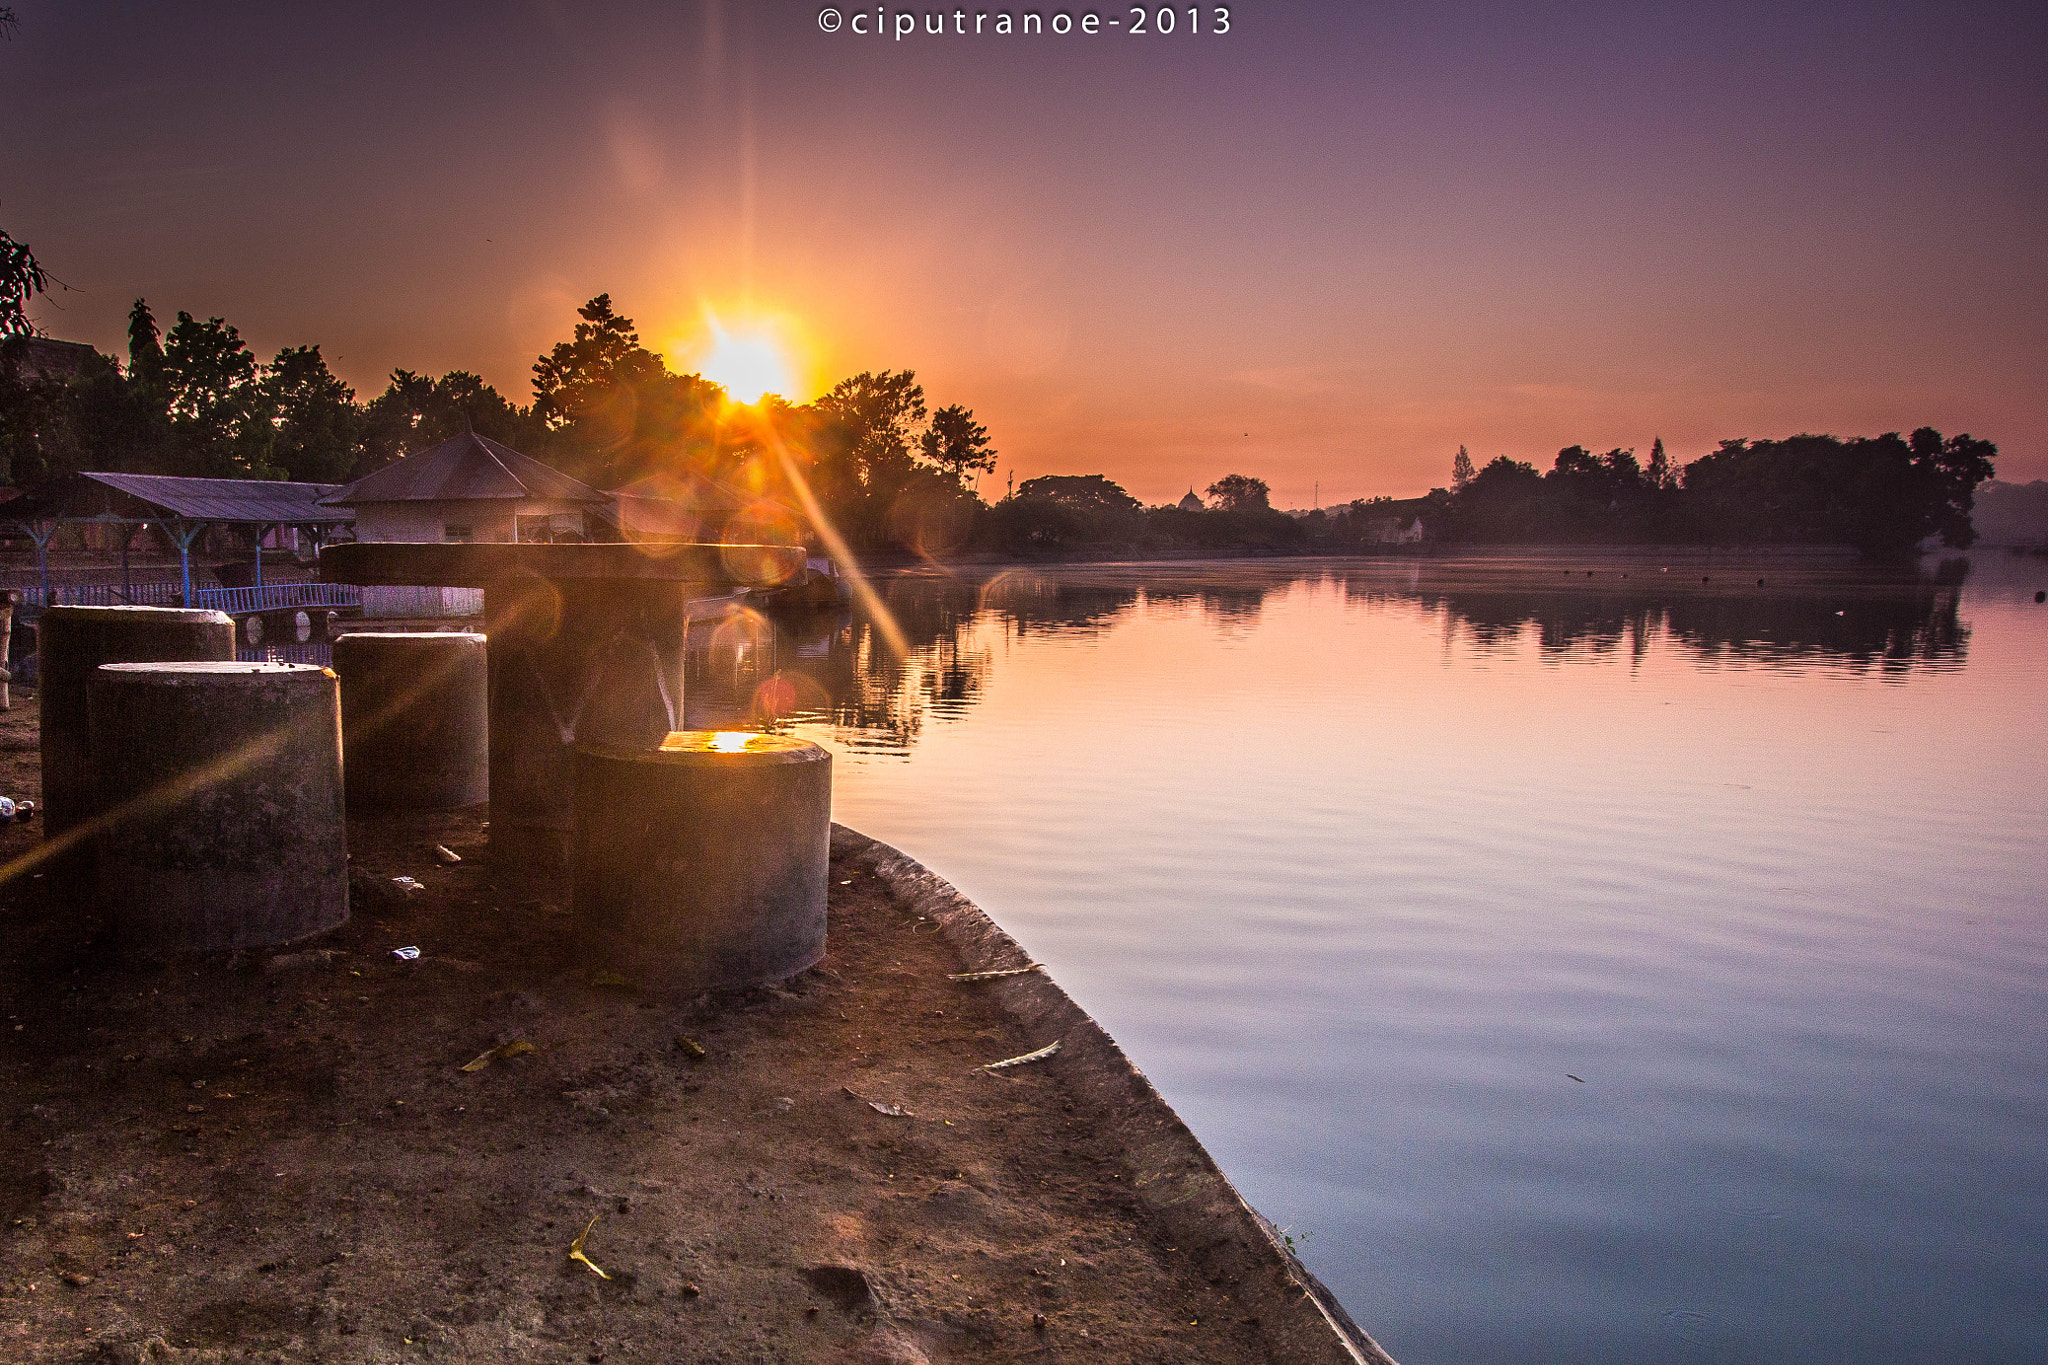 Photograph RanuGrati Lake by Ciput Ranoe on 500px